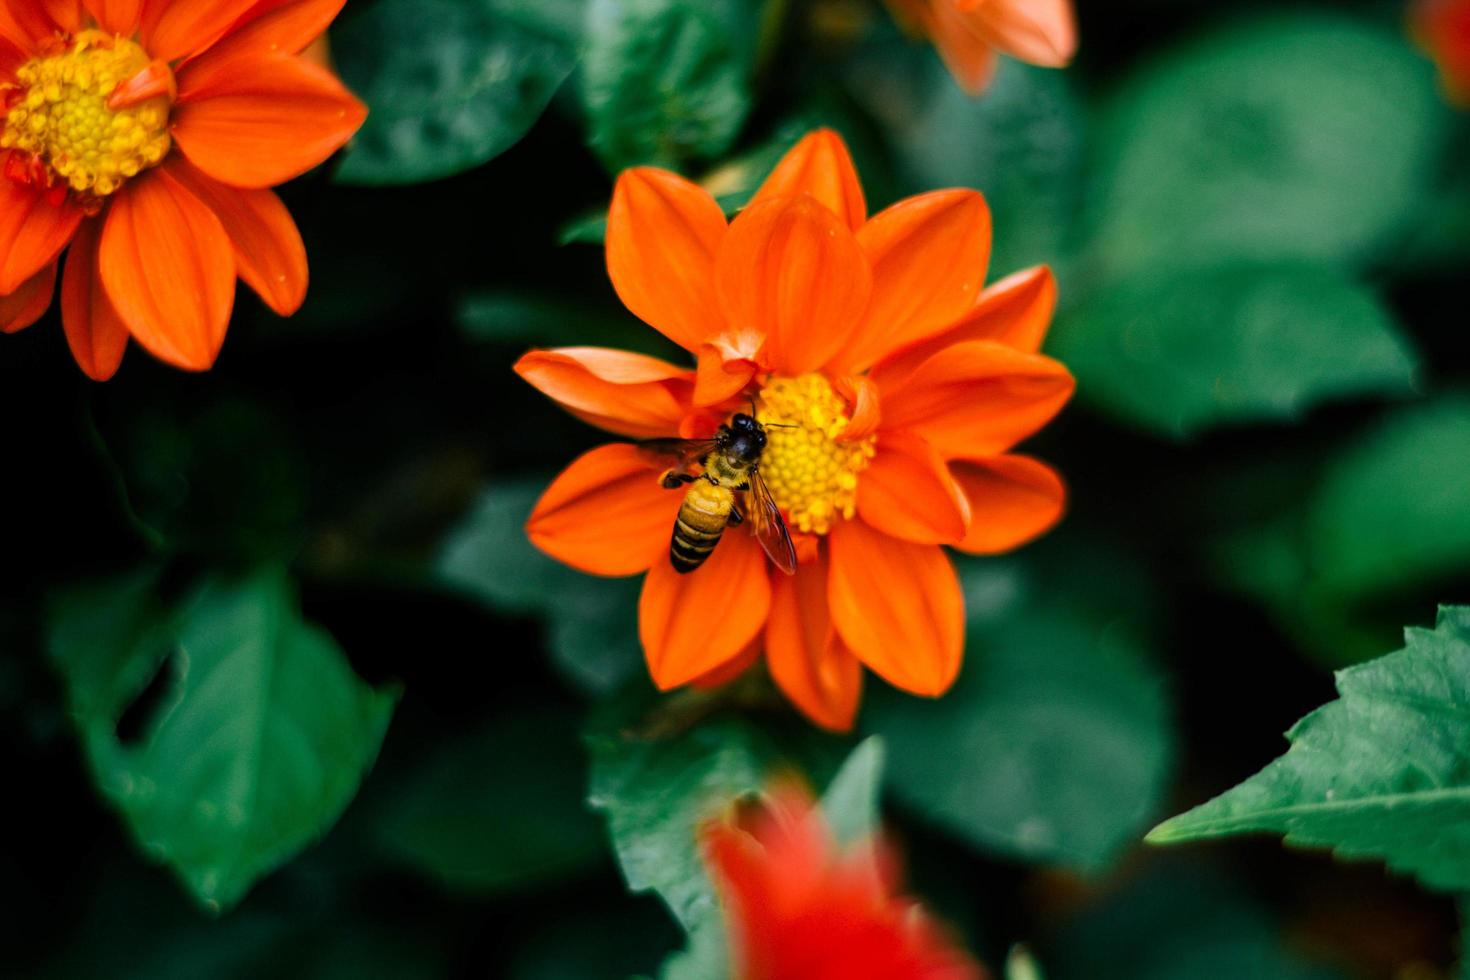 Bee on an orange flower photo